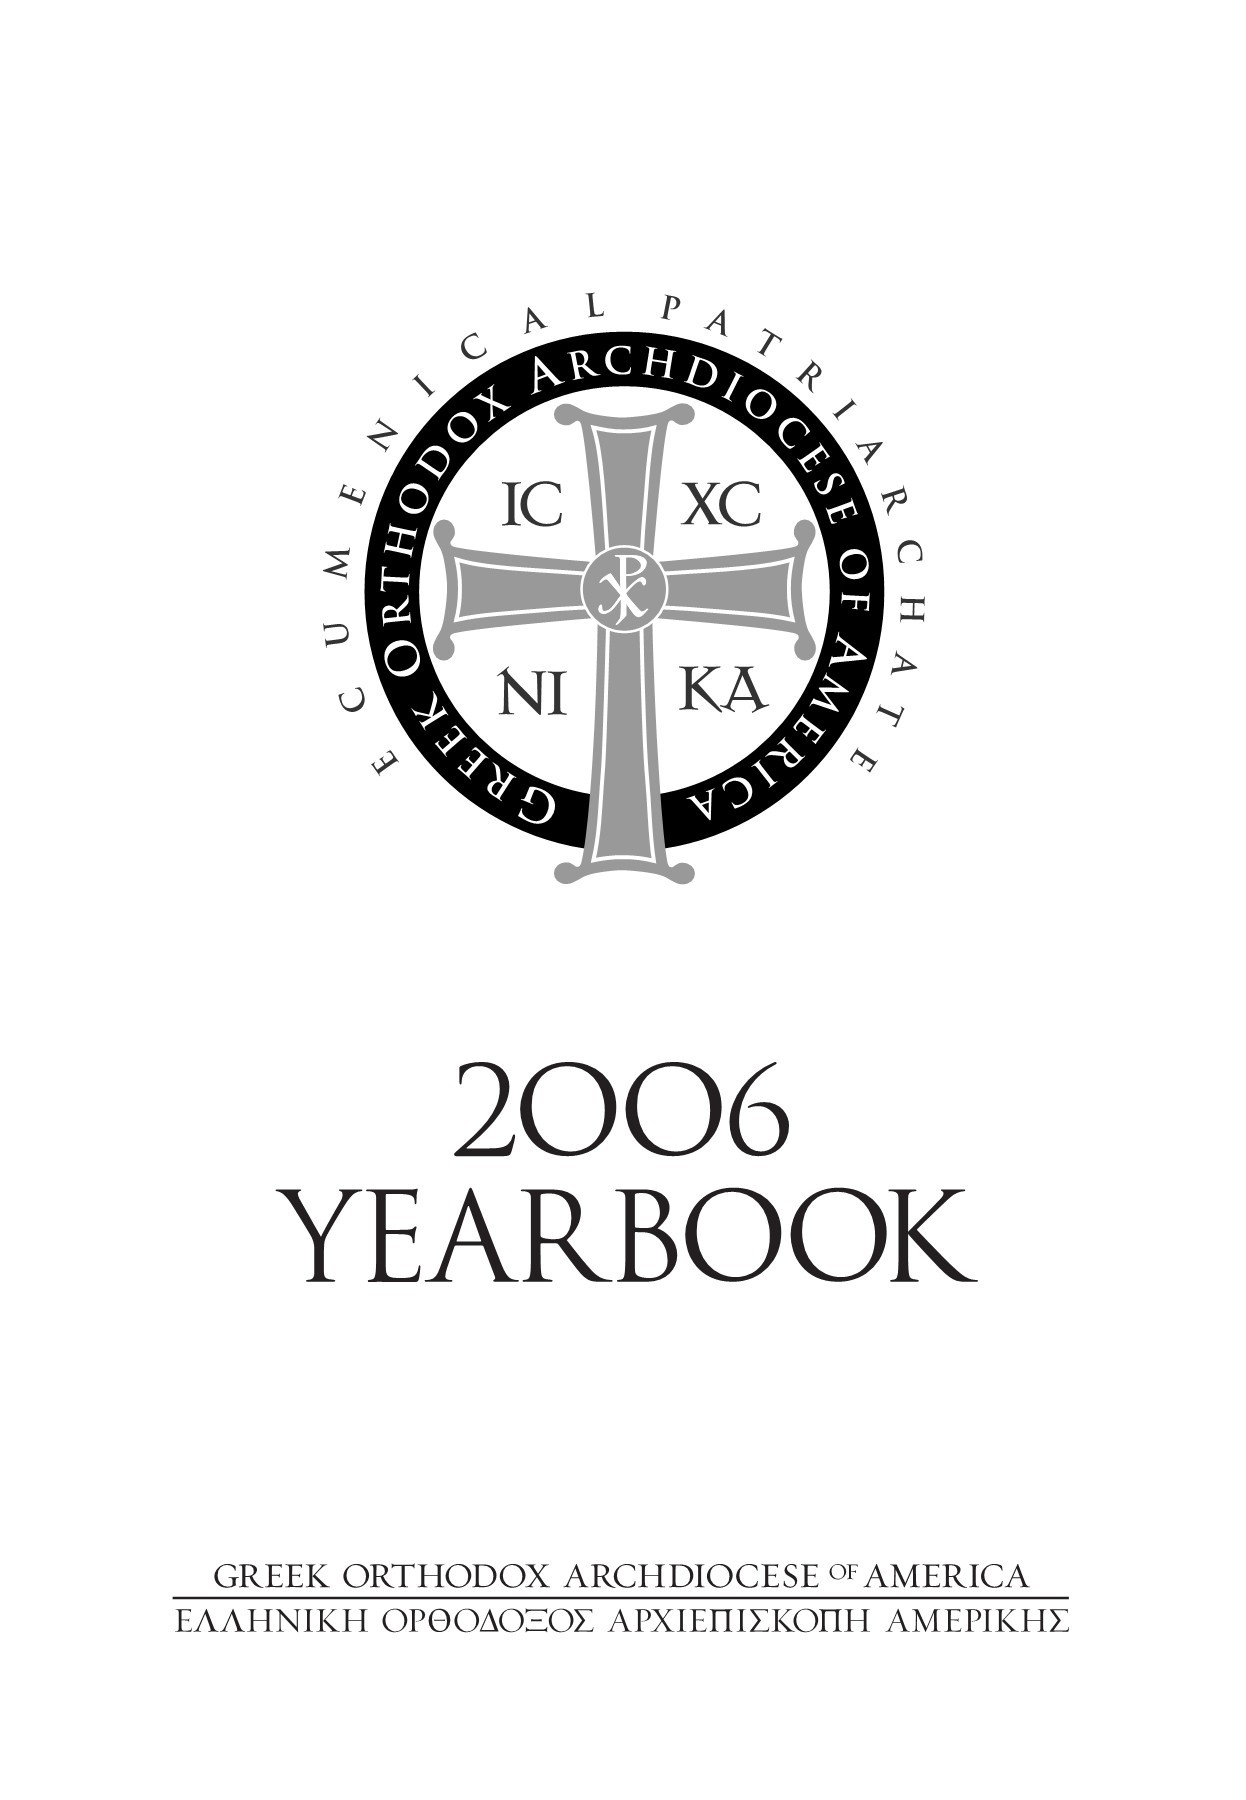 Greek Orthodox Archdiocese Of America 2006 Yearbook Archdiocese